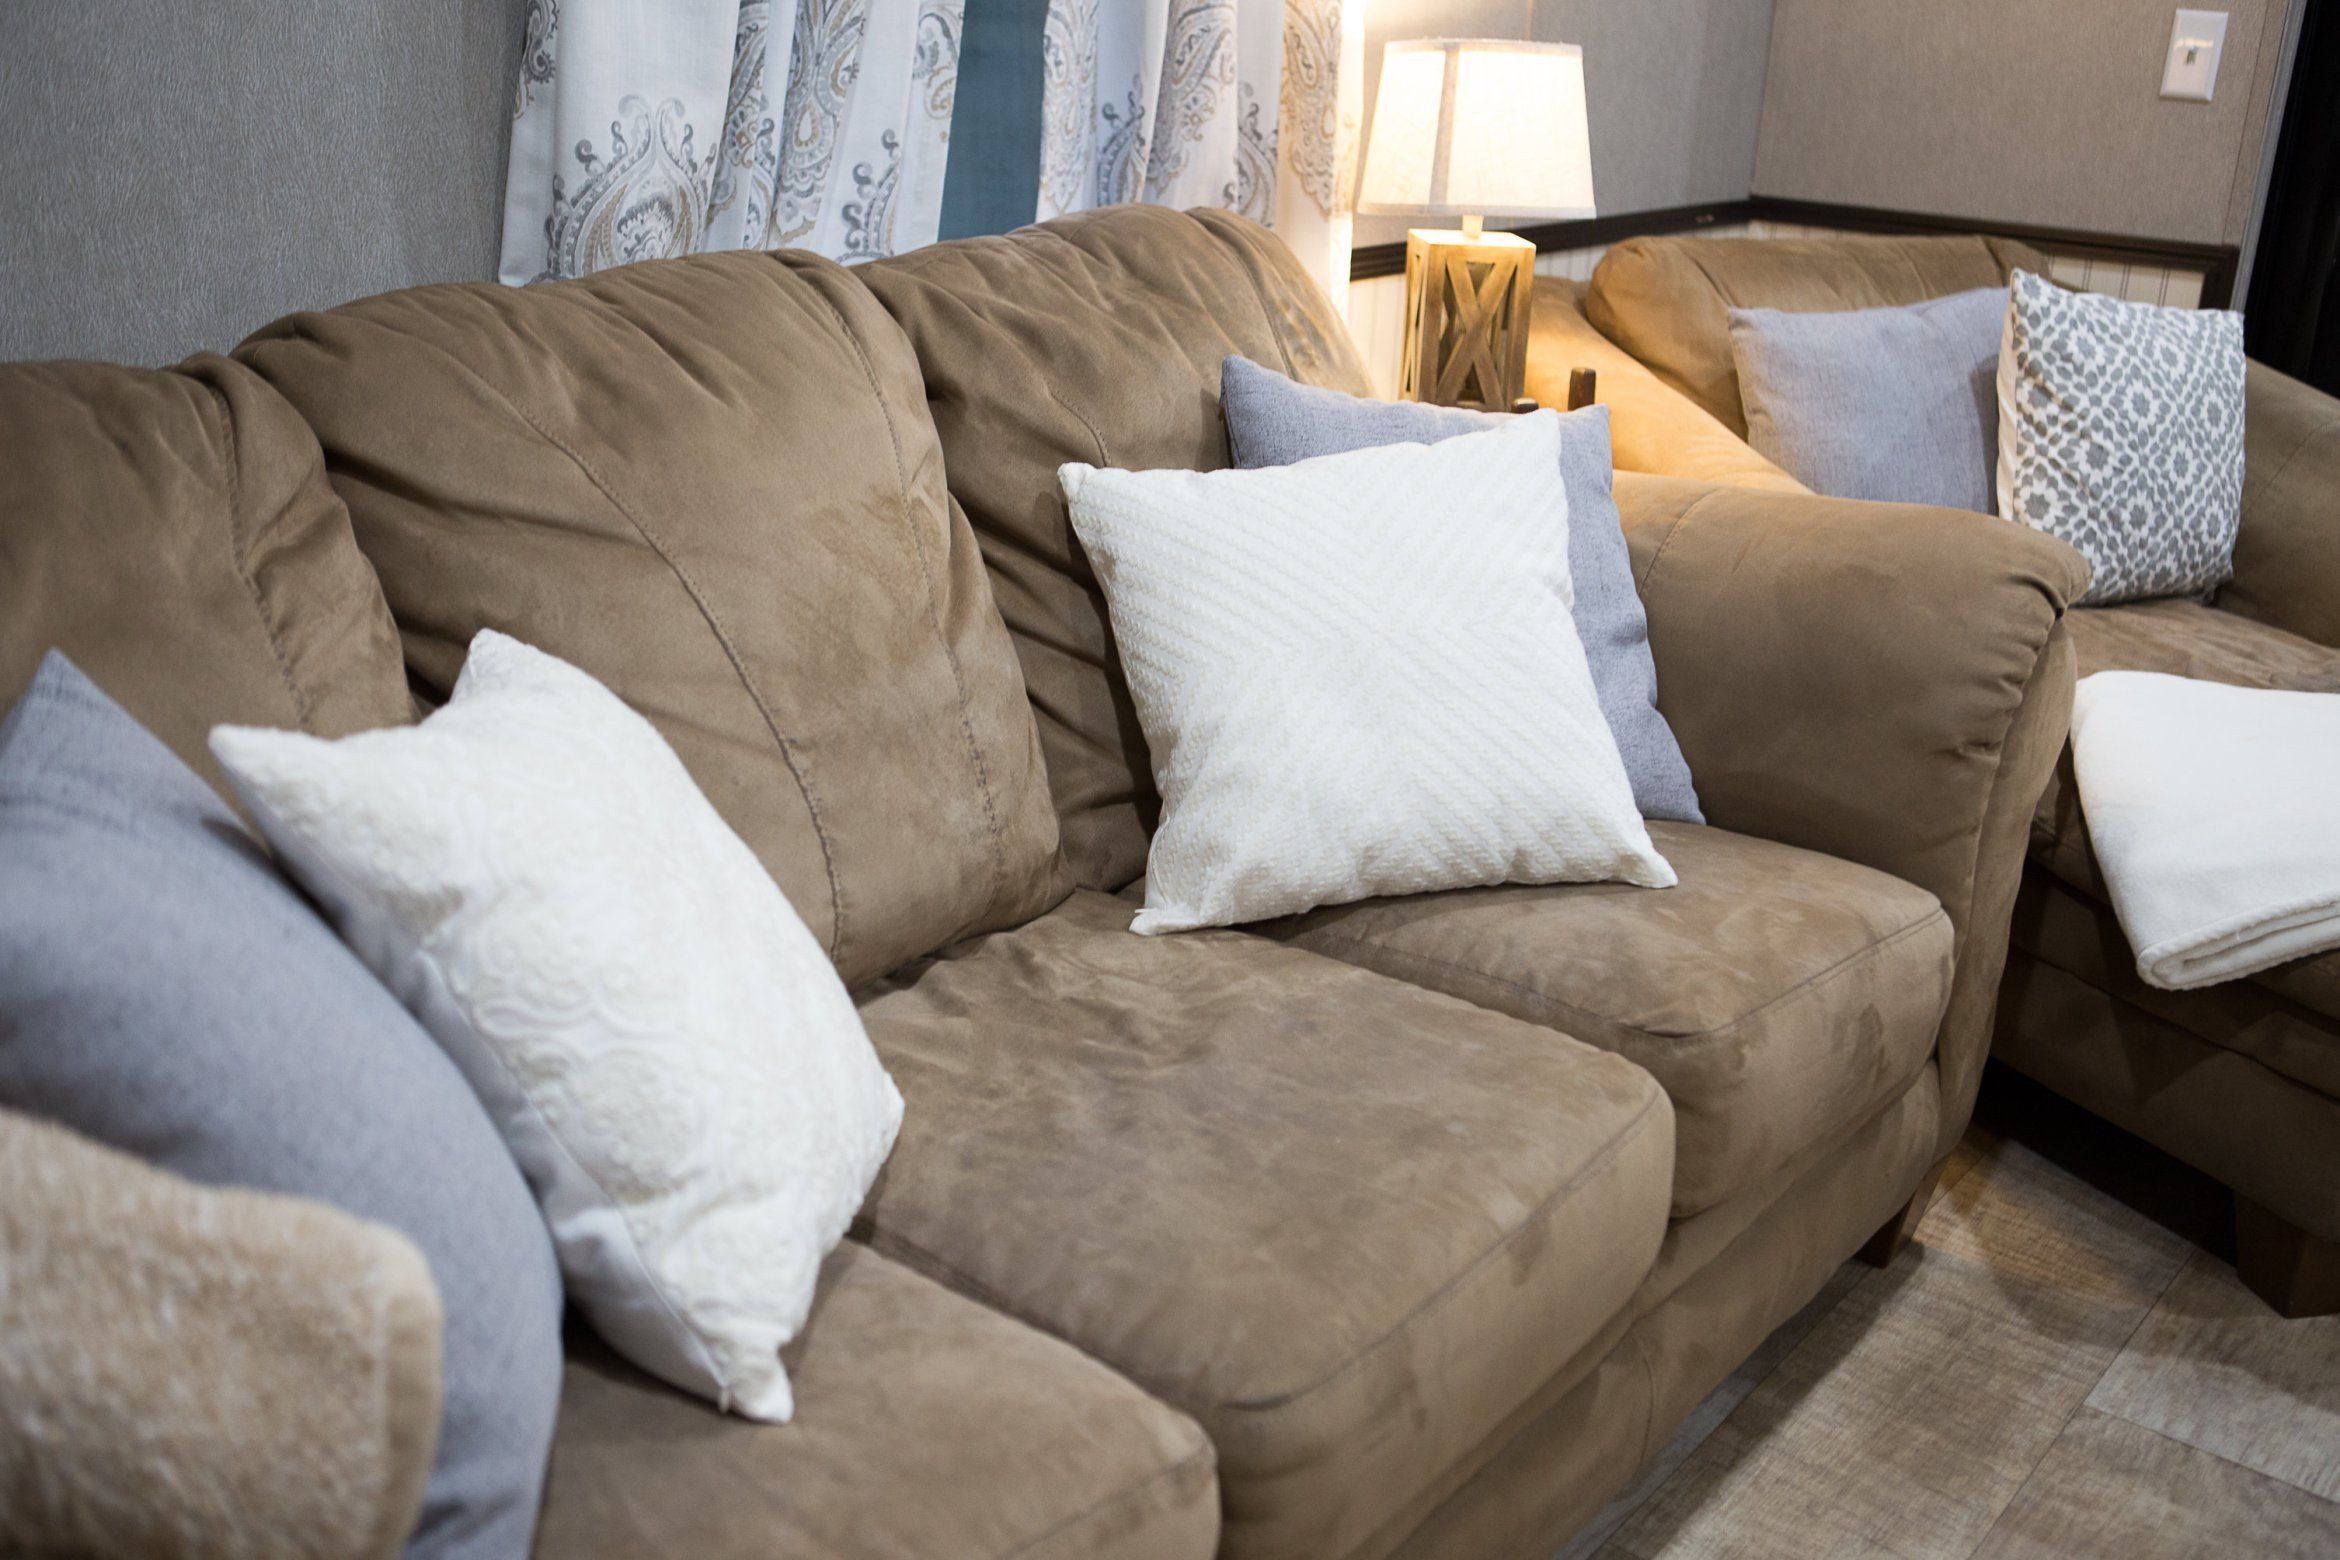 Brown Suede Couch With Grey And White Pillows Decorative Lamp